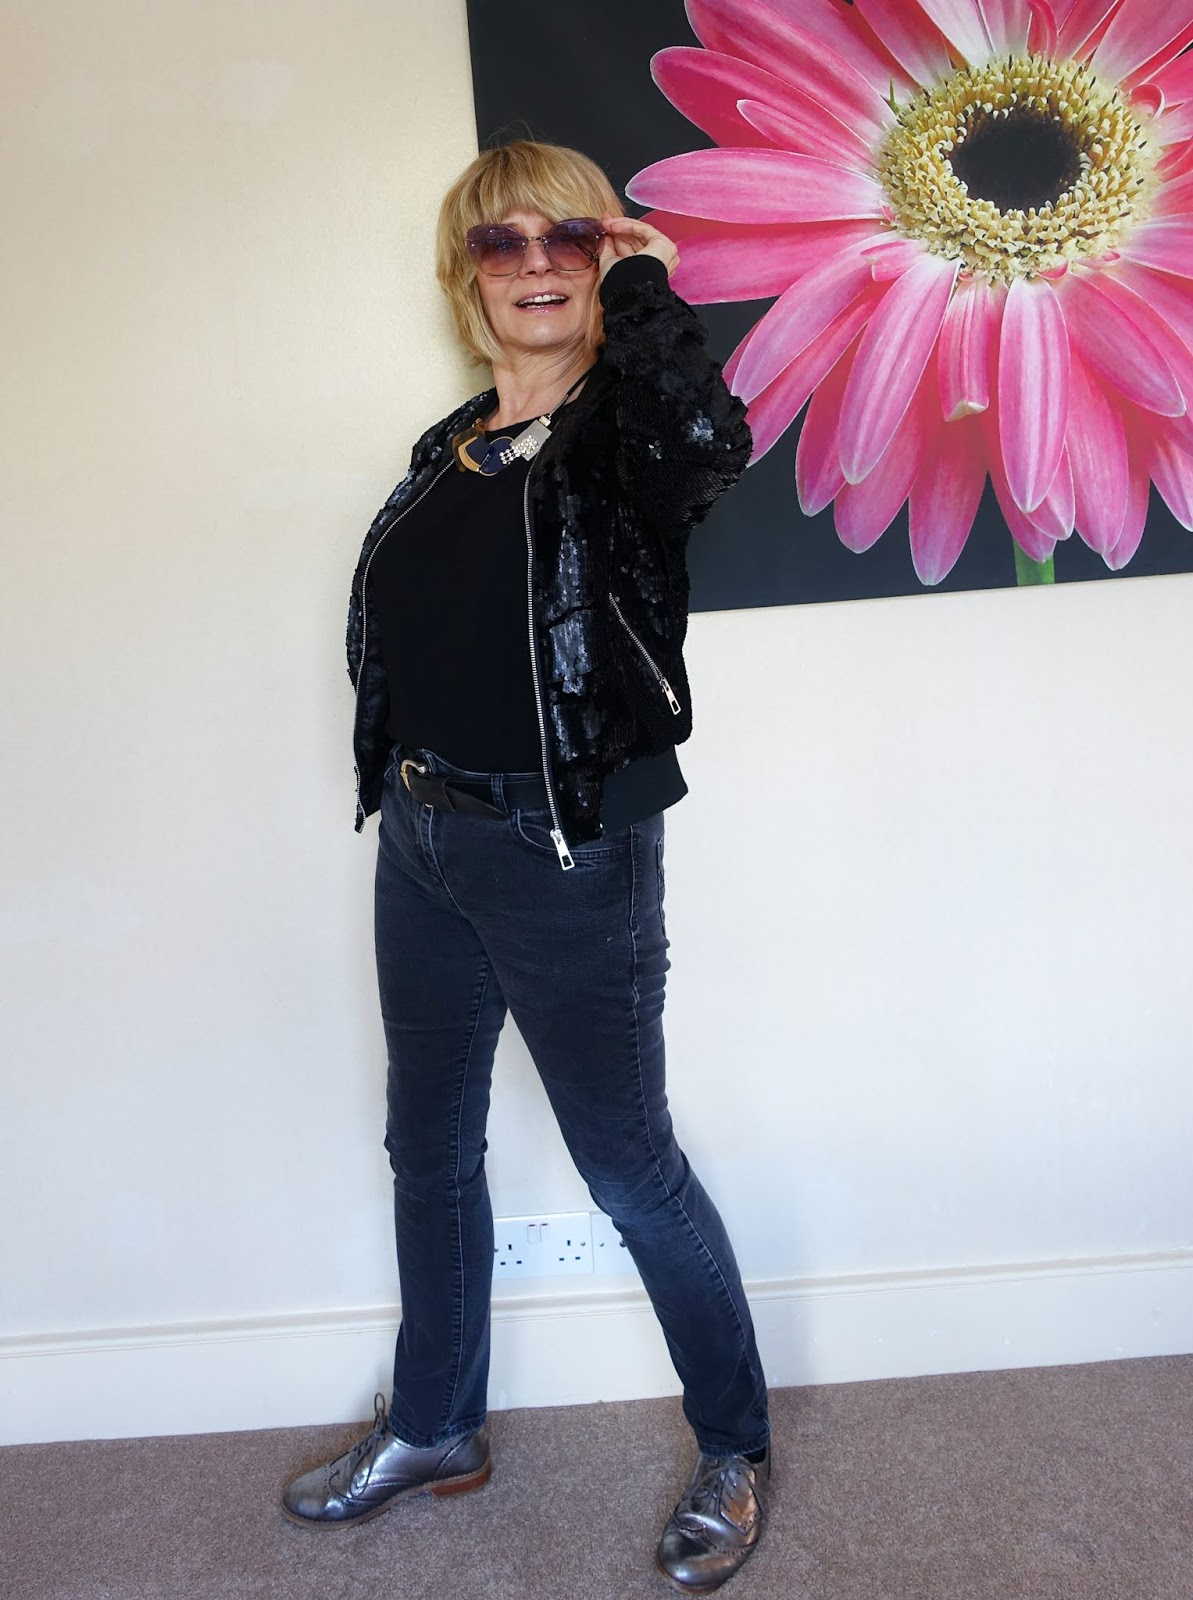 Off to a rock concert wearing all black with a matte sequin bomber jacket black jeans and sunglasses